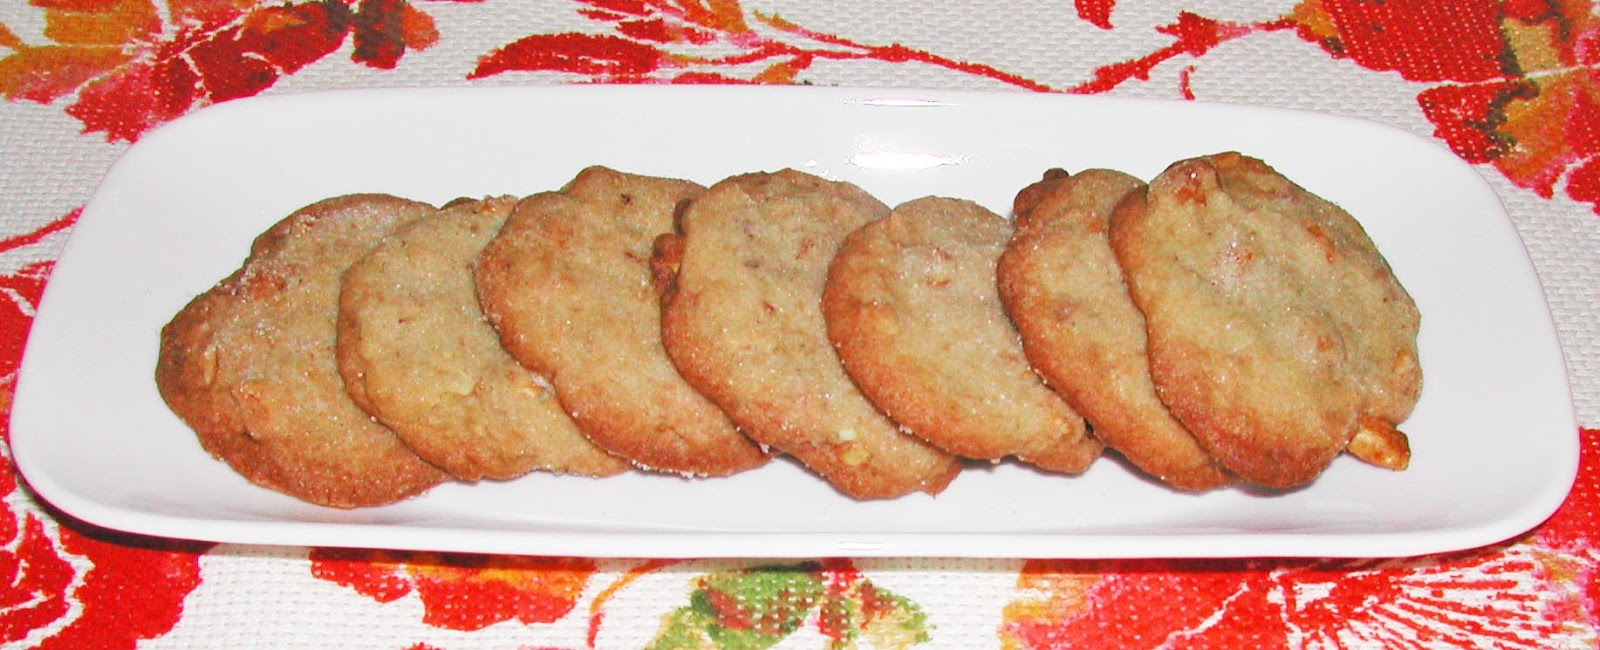 The Iowa Housewife: Honey Roasted Peanut Crisps